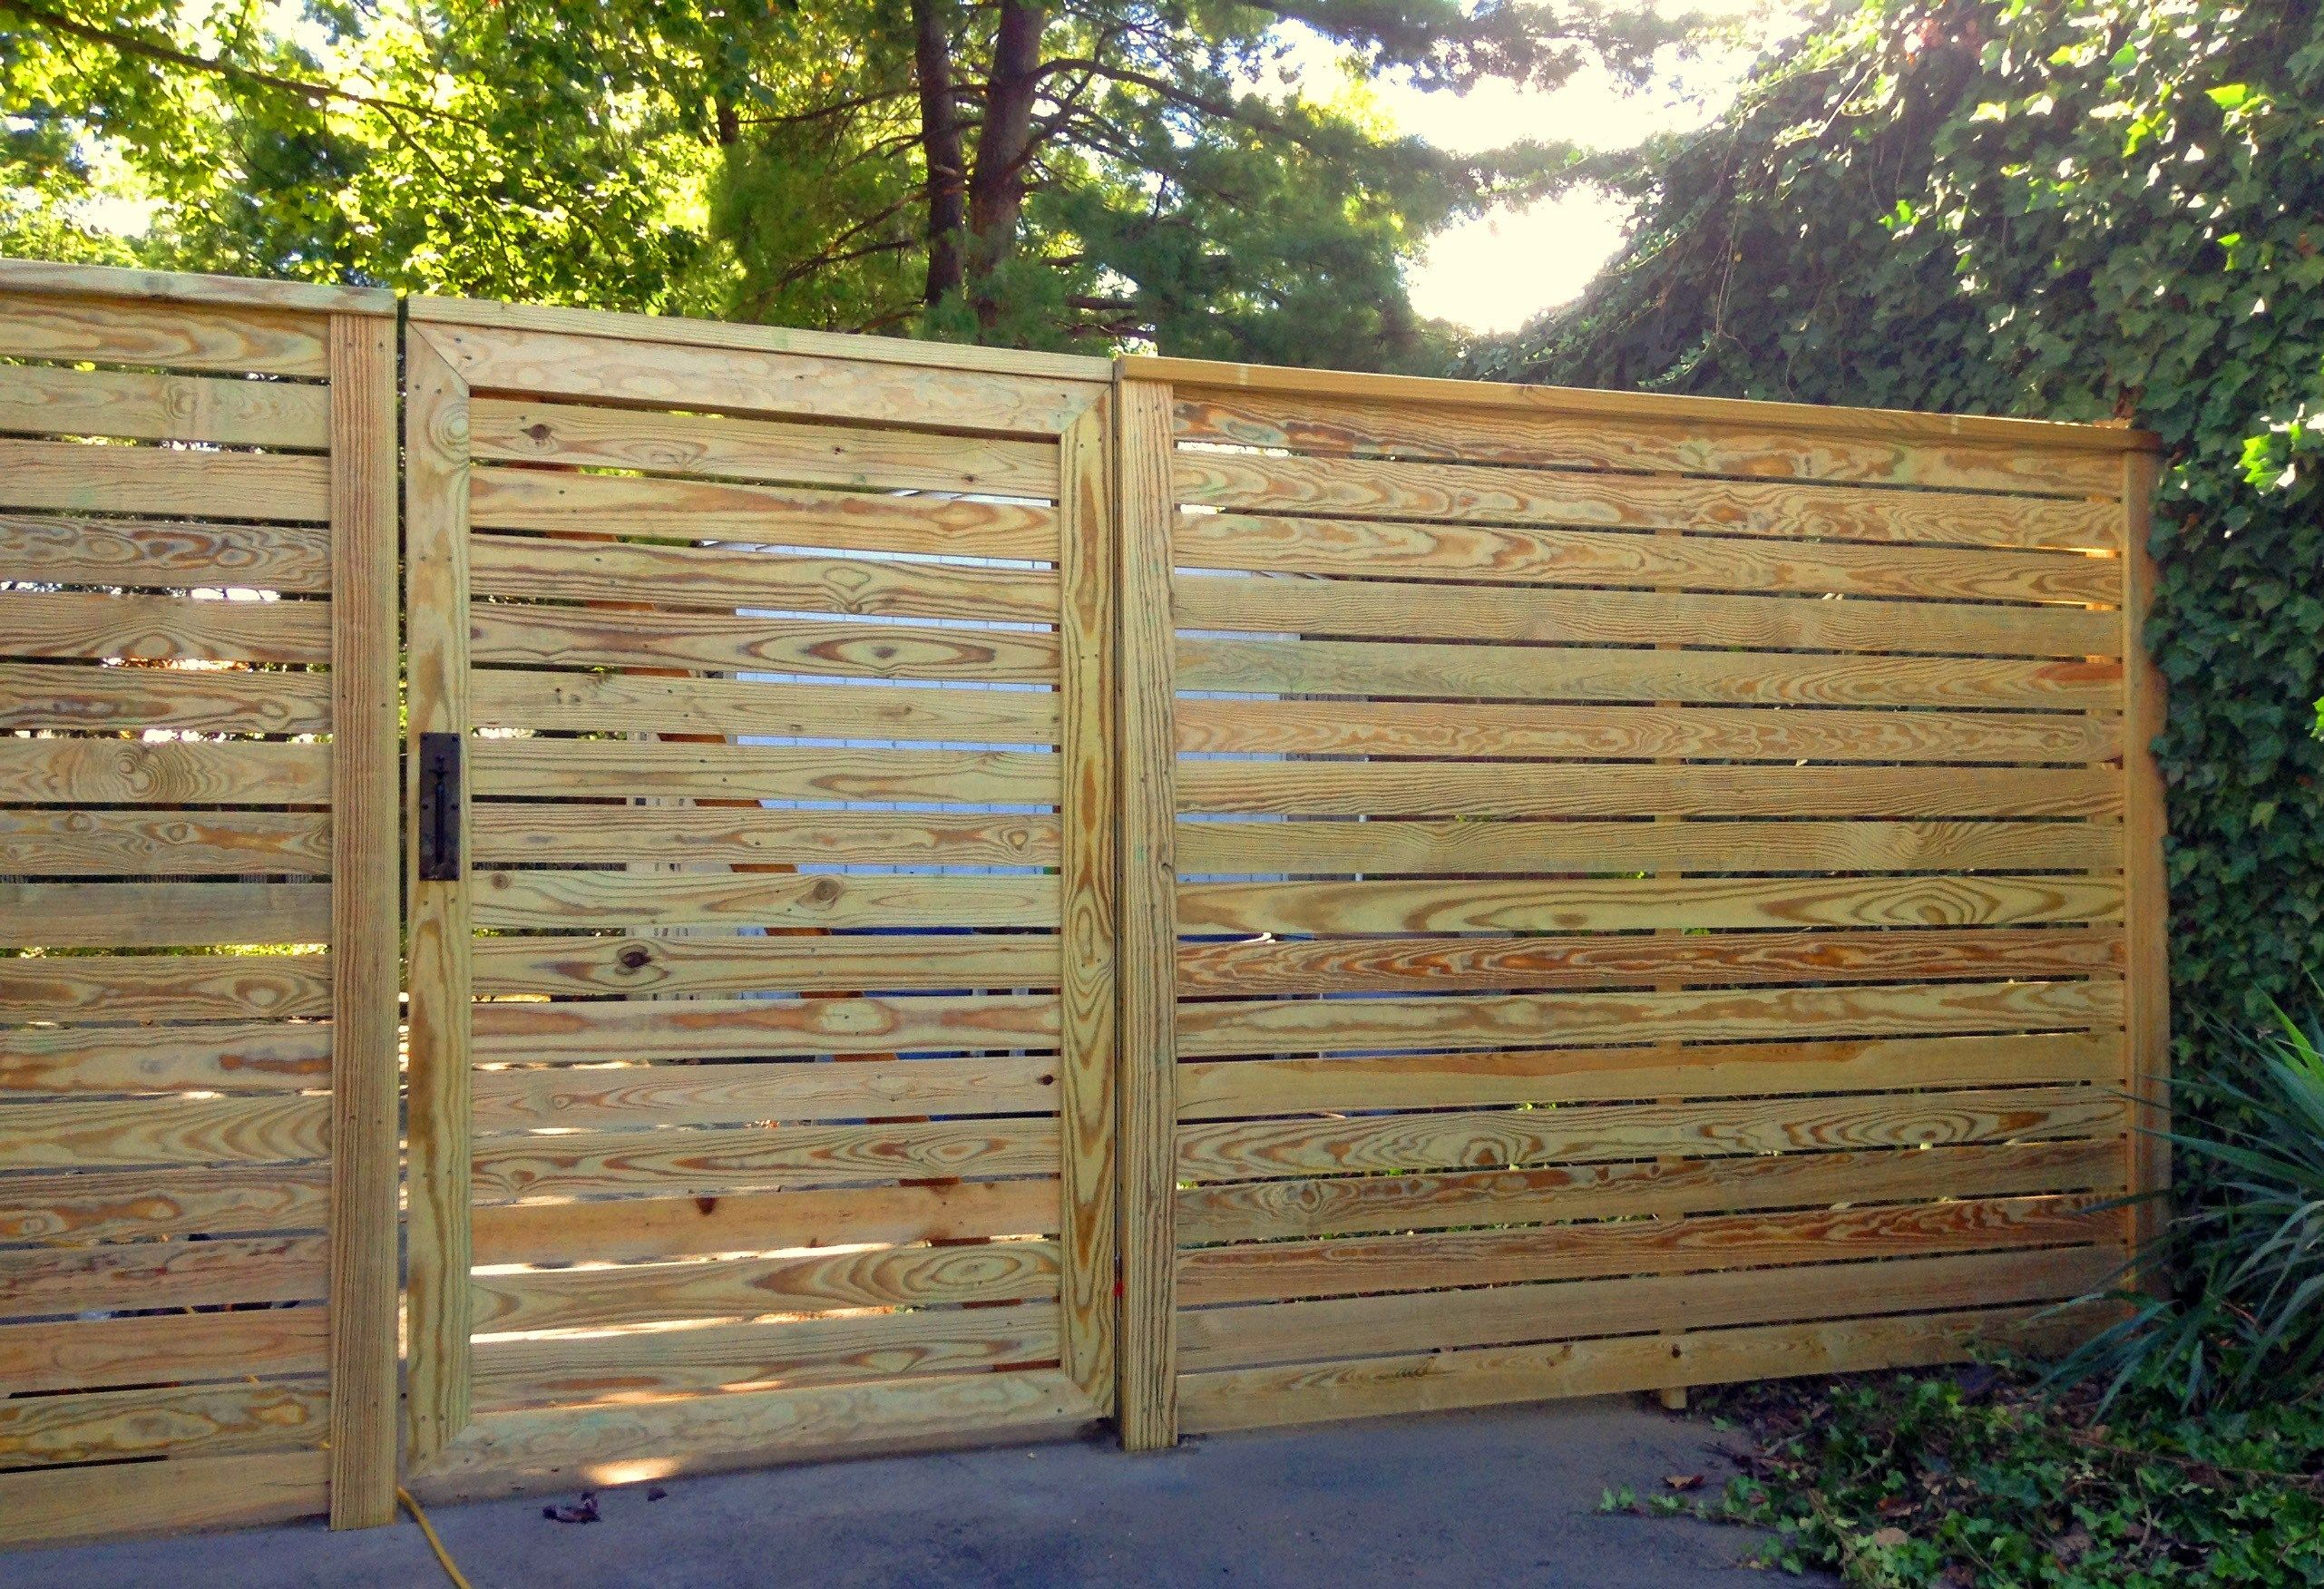 Horizontal Board Privacy Wood Fence Contemporary Wood Fence Design Wood Fence Gate Ideas Fence Designs Wood Fence Design Wood Fence Wood Fence Gate Designs